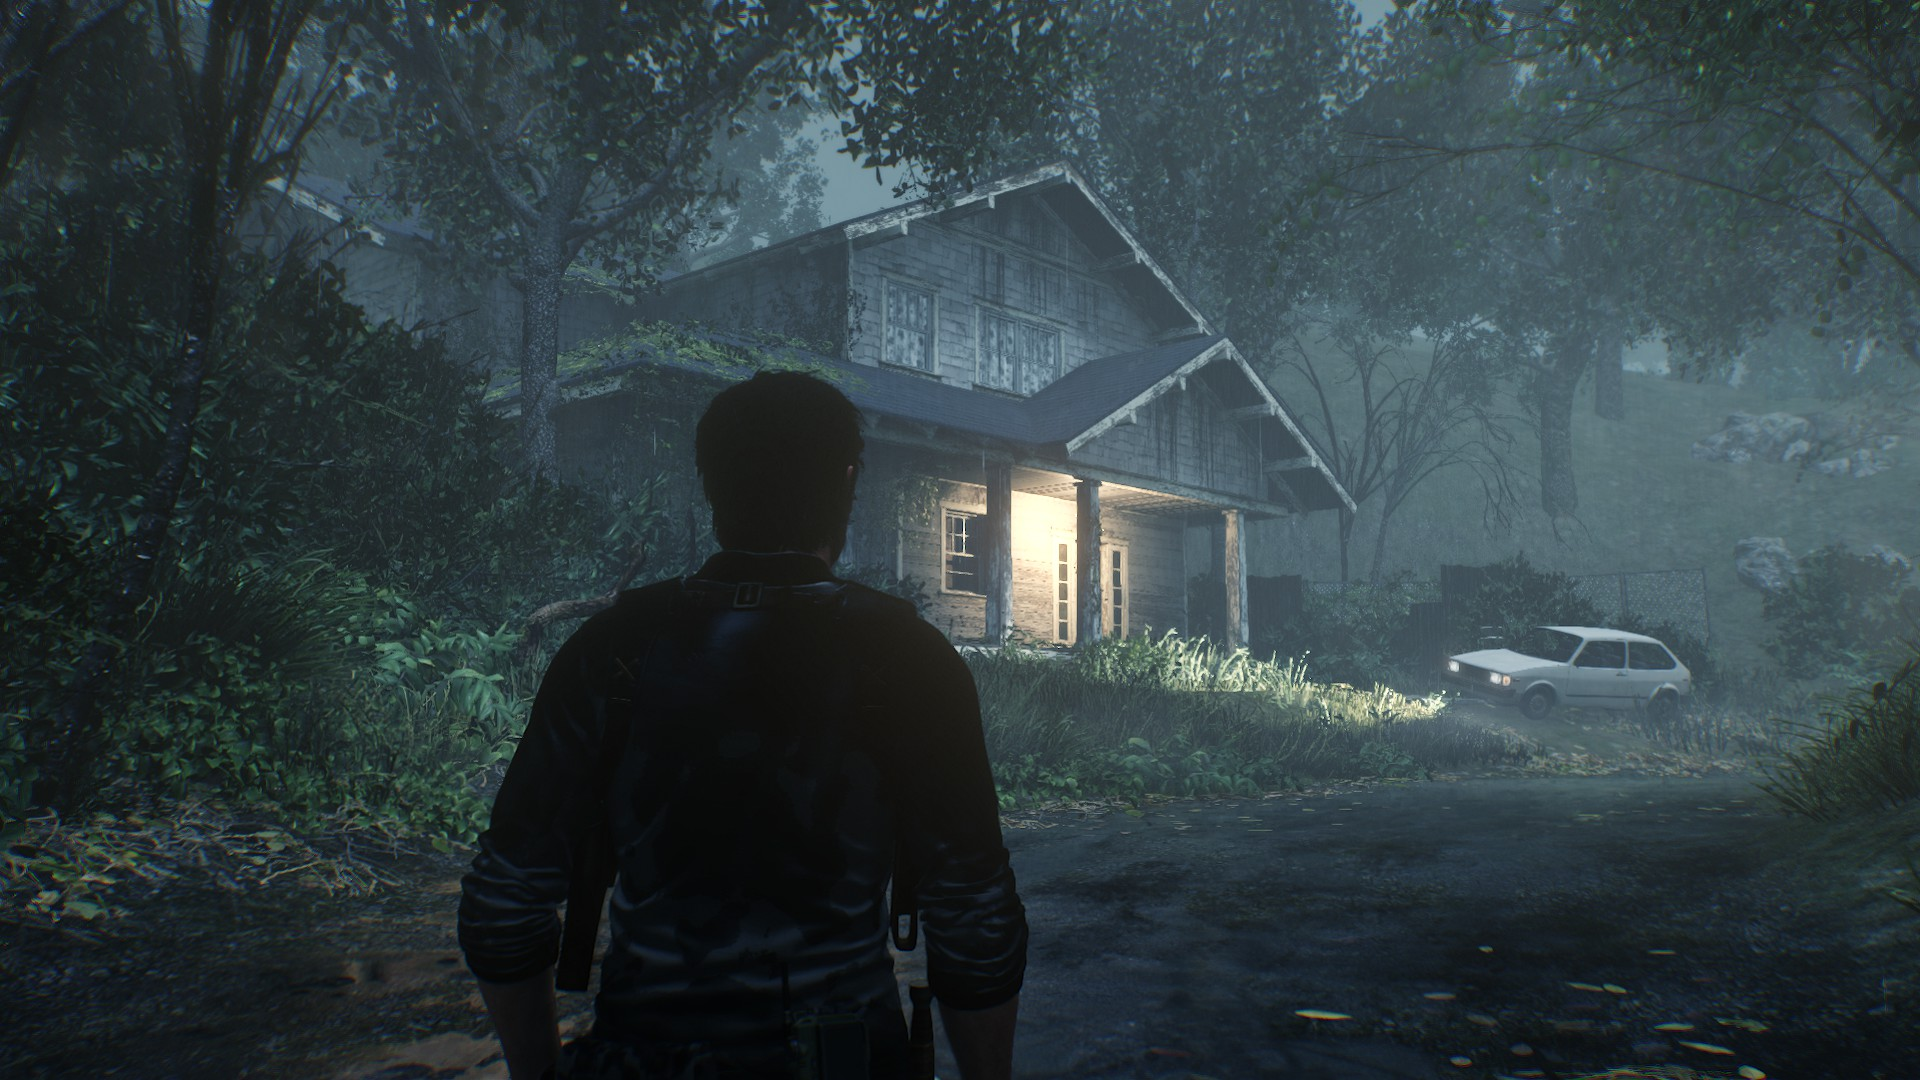 The Evil Within 2 Hd Wallpaper - Evil Within 2 345 Cedar Avenue , HD Wallpaper & Backgrounds